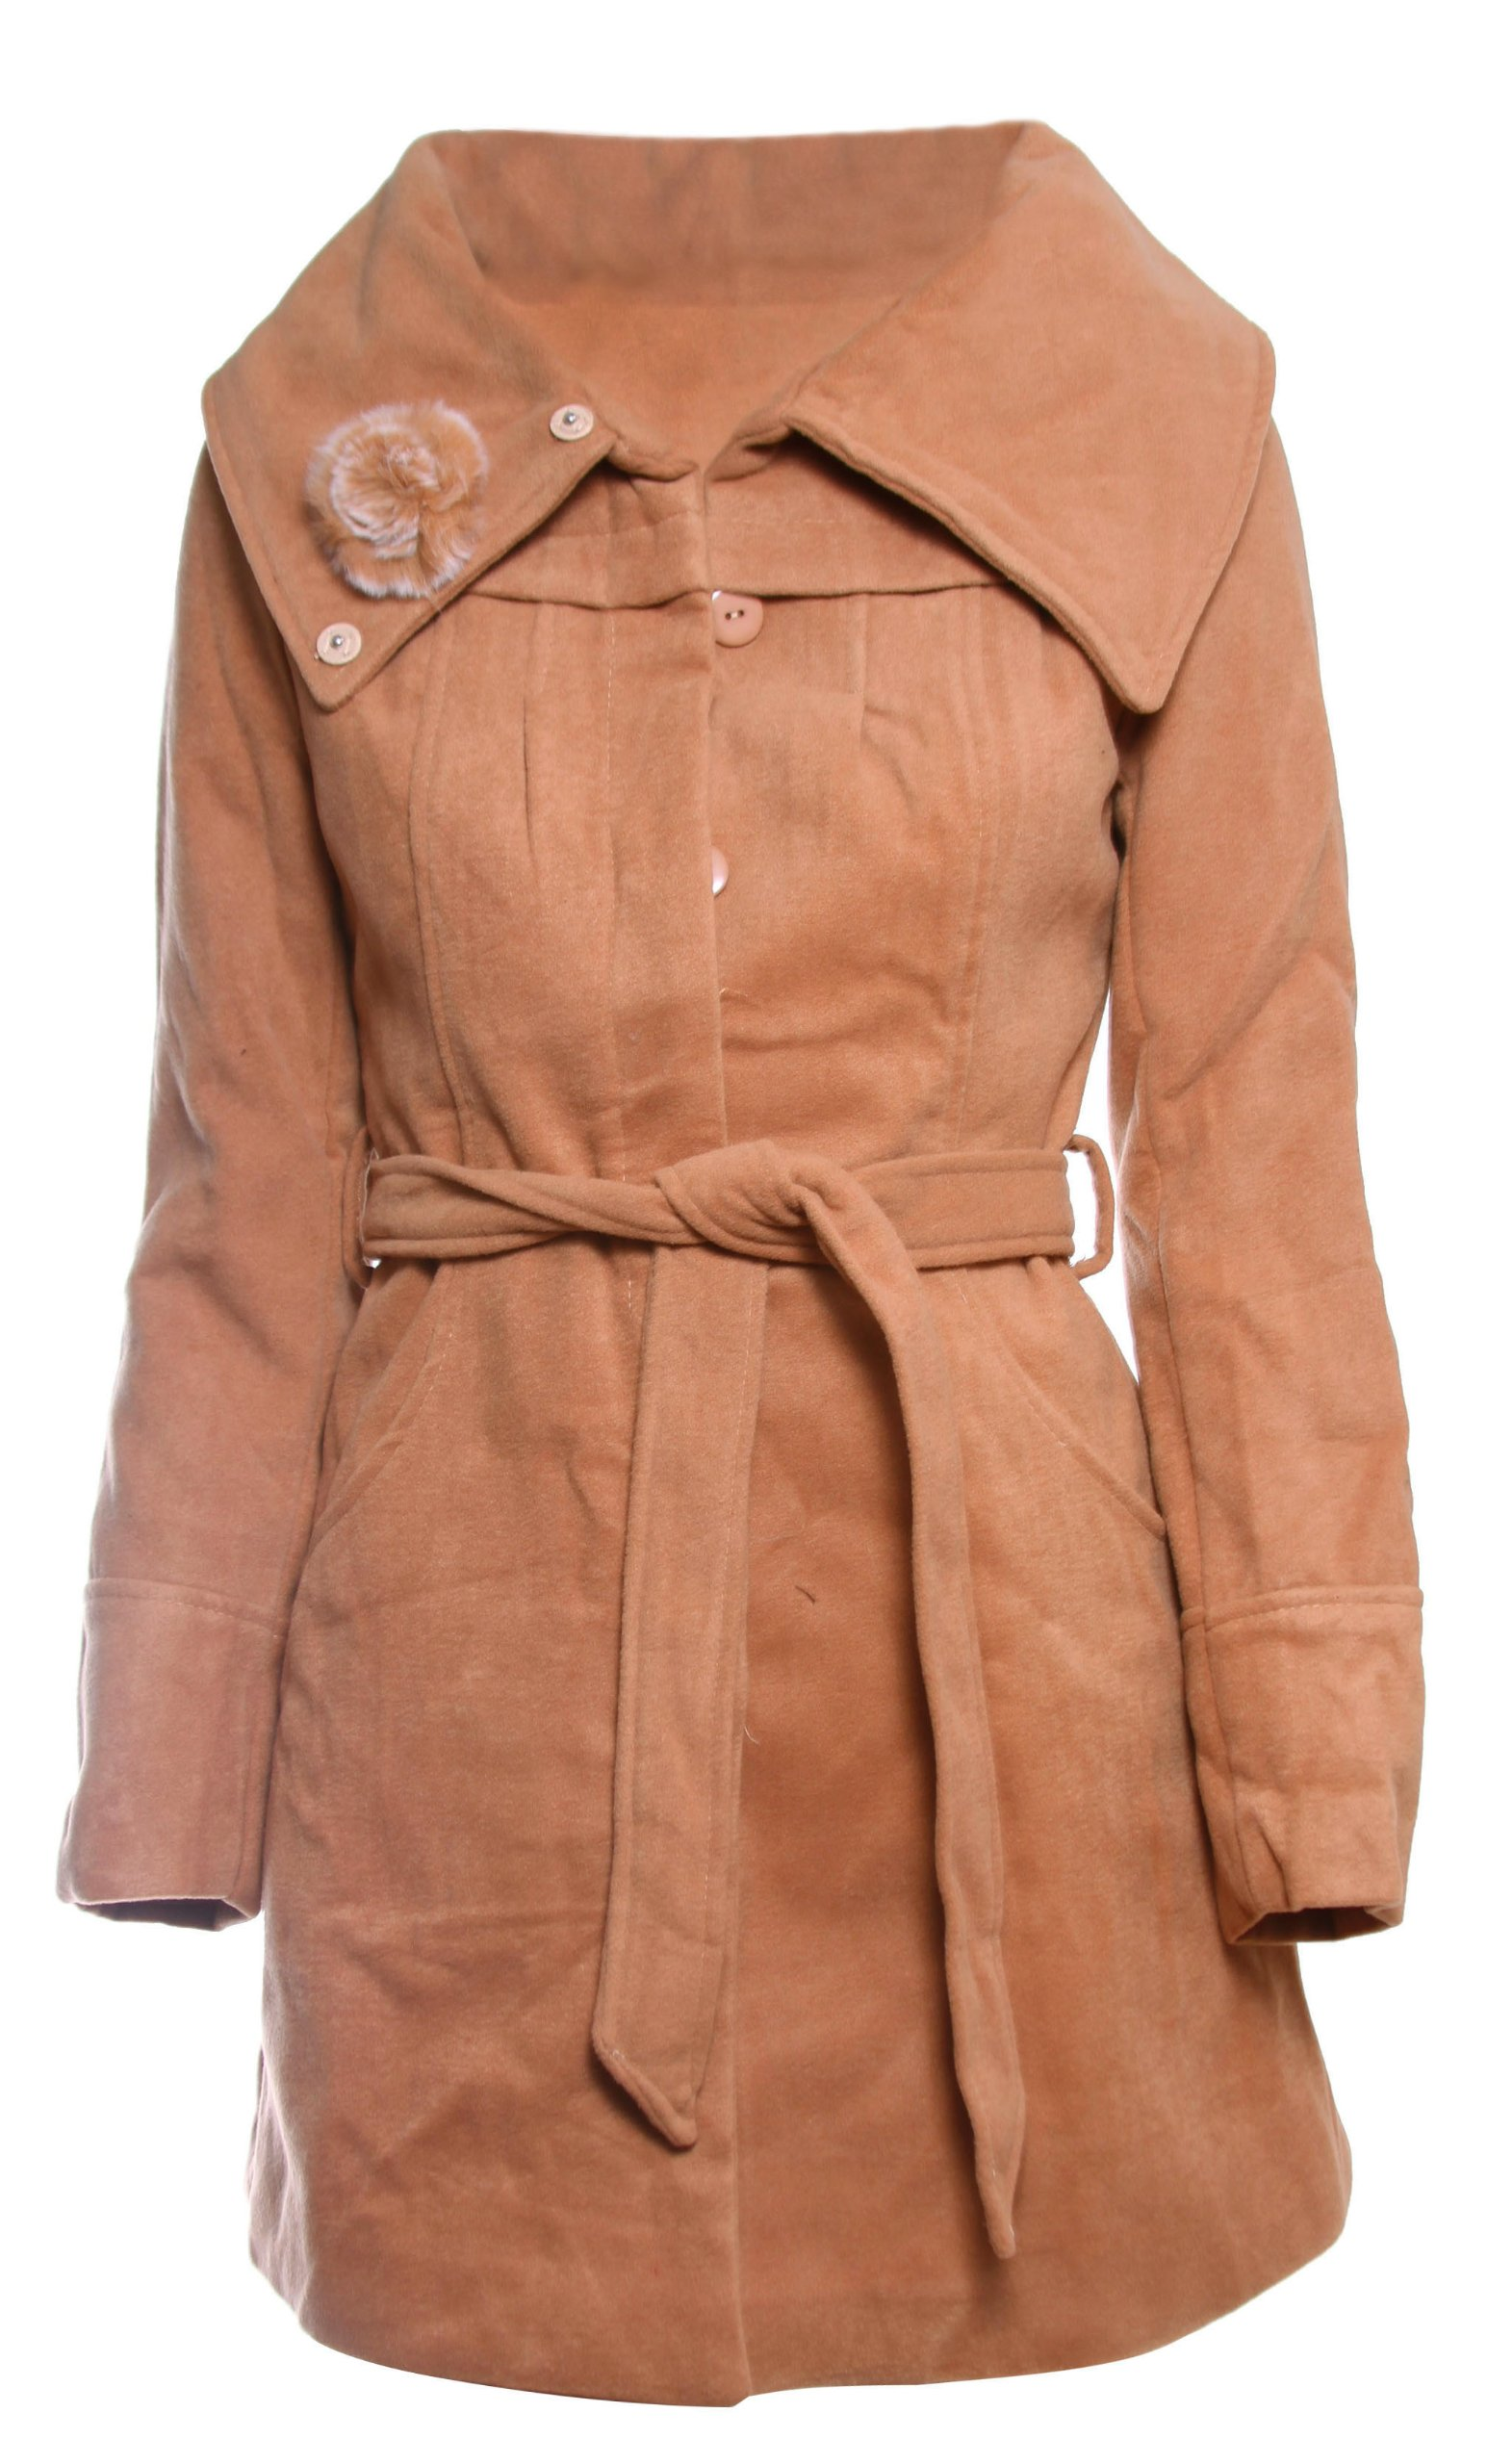 Chic Wool Coat with Rose adorned Vintage Collar in Long Sleeve, Camel, L